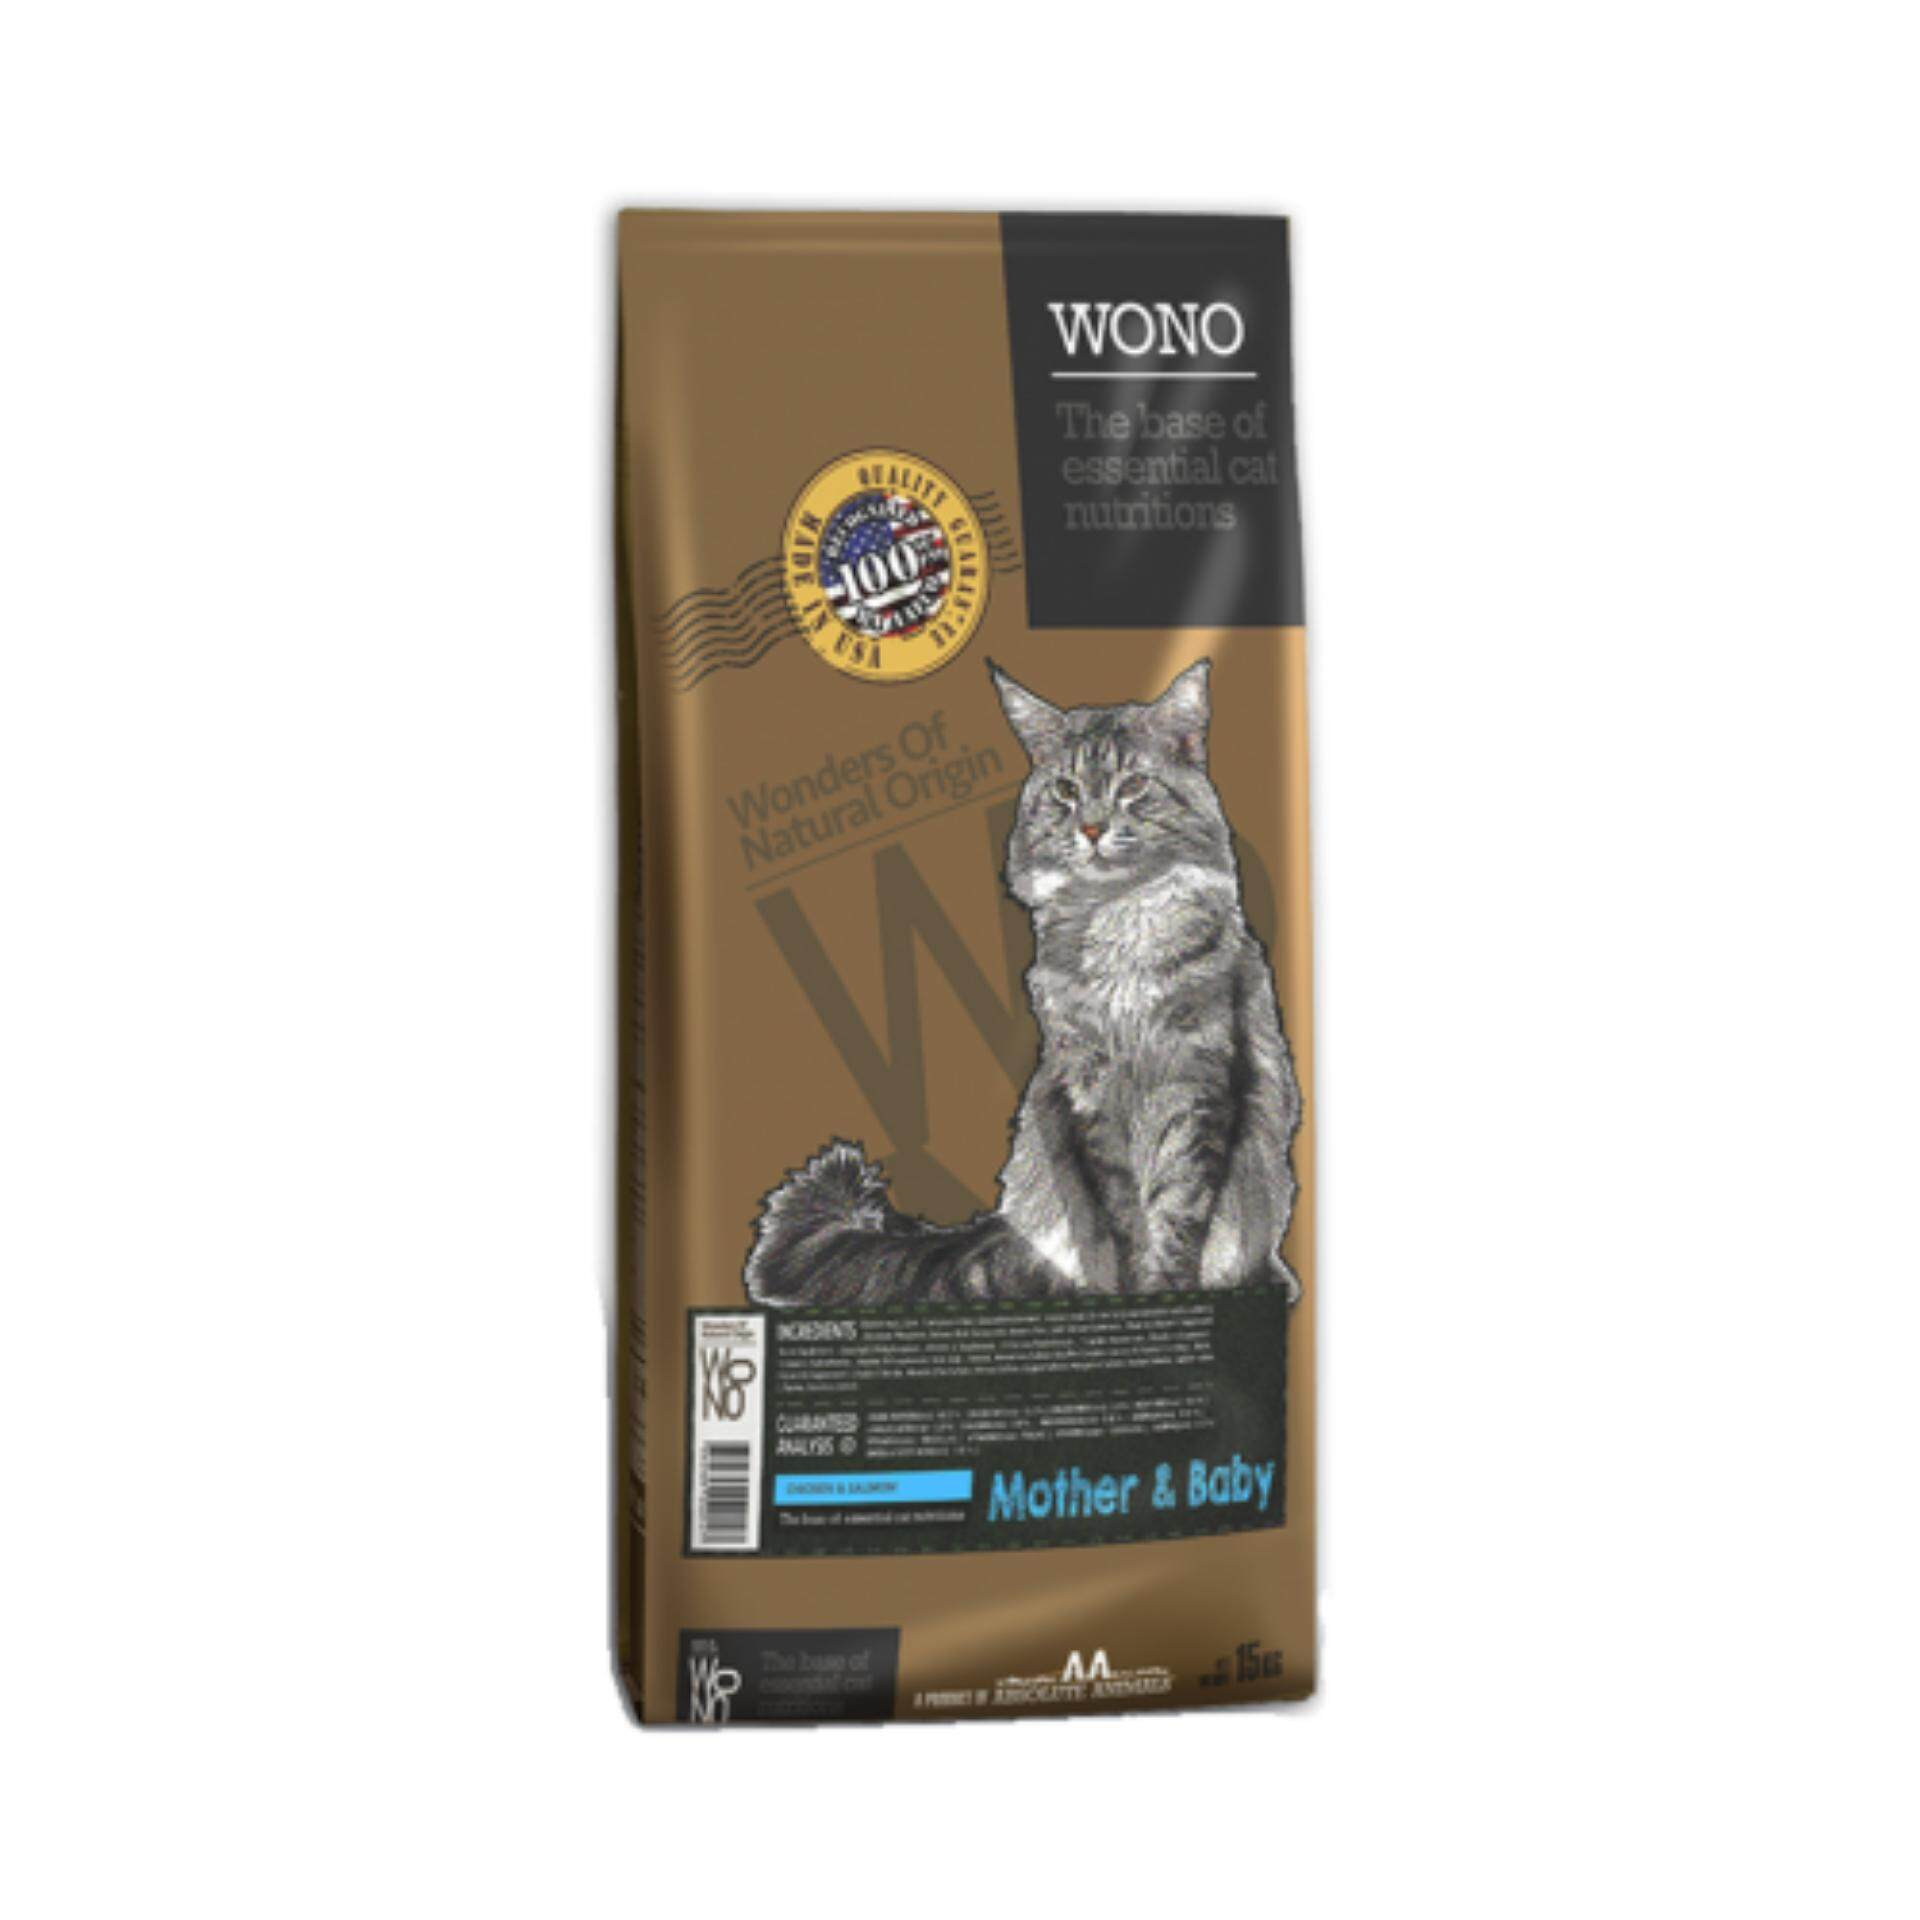 WONO Mother & Baby Cat Food 2kg